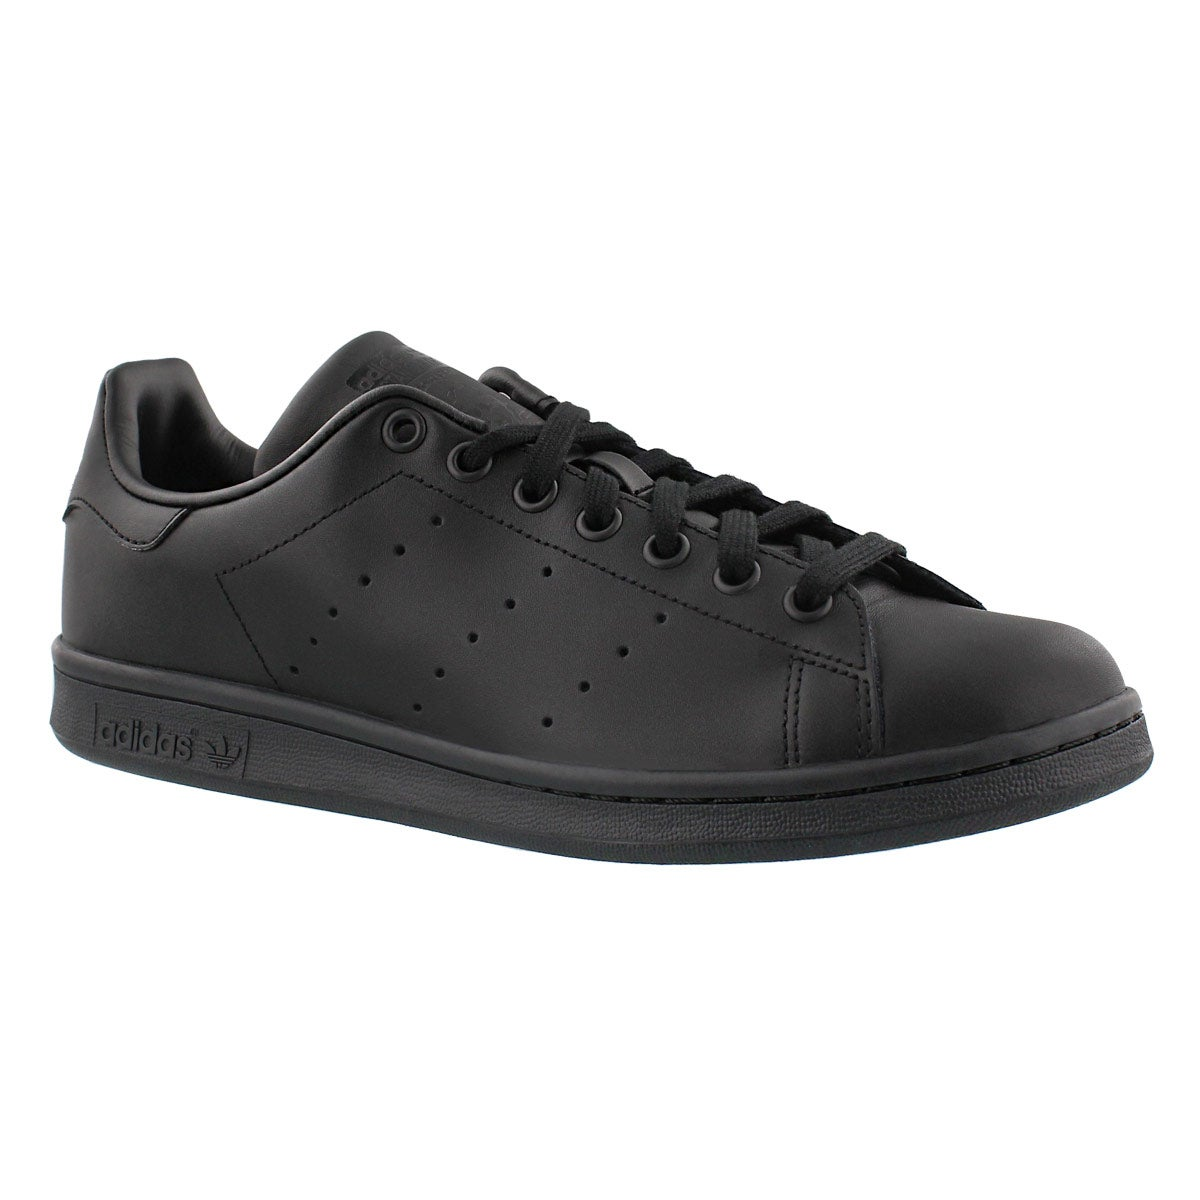 Mns Stan Smith black sneaker